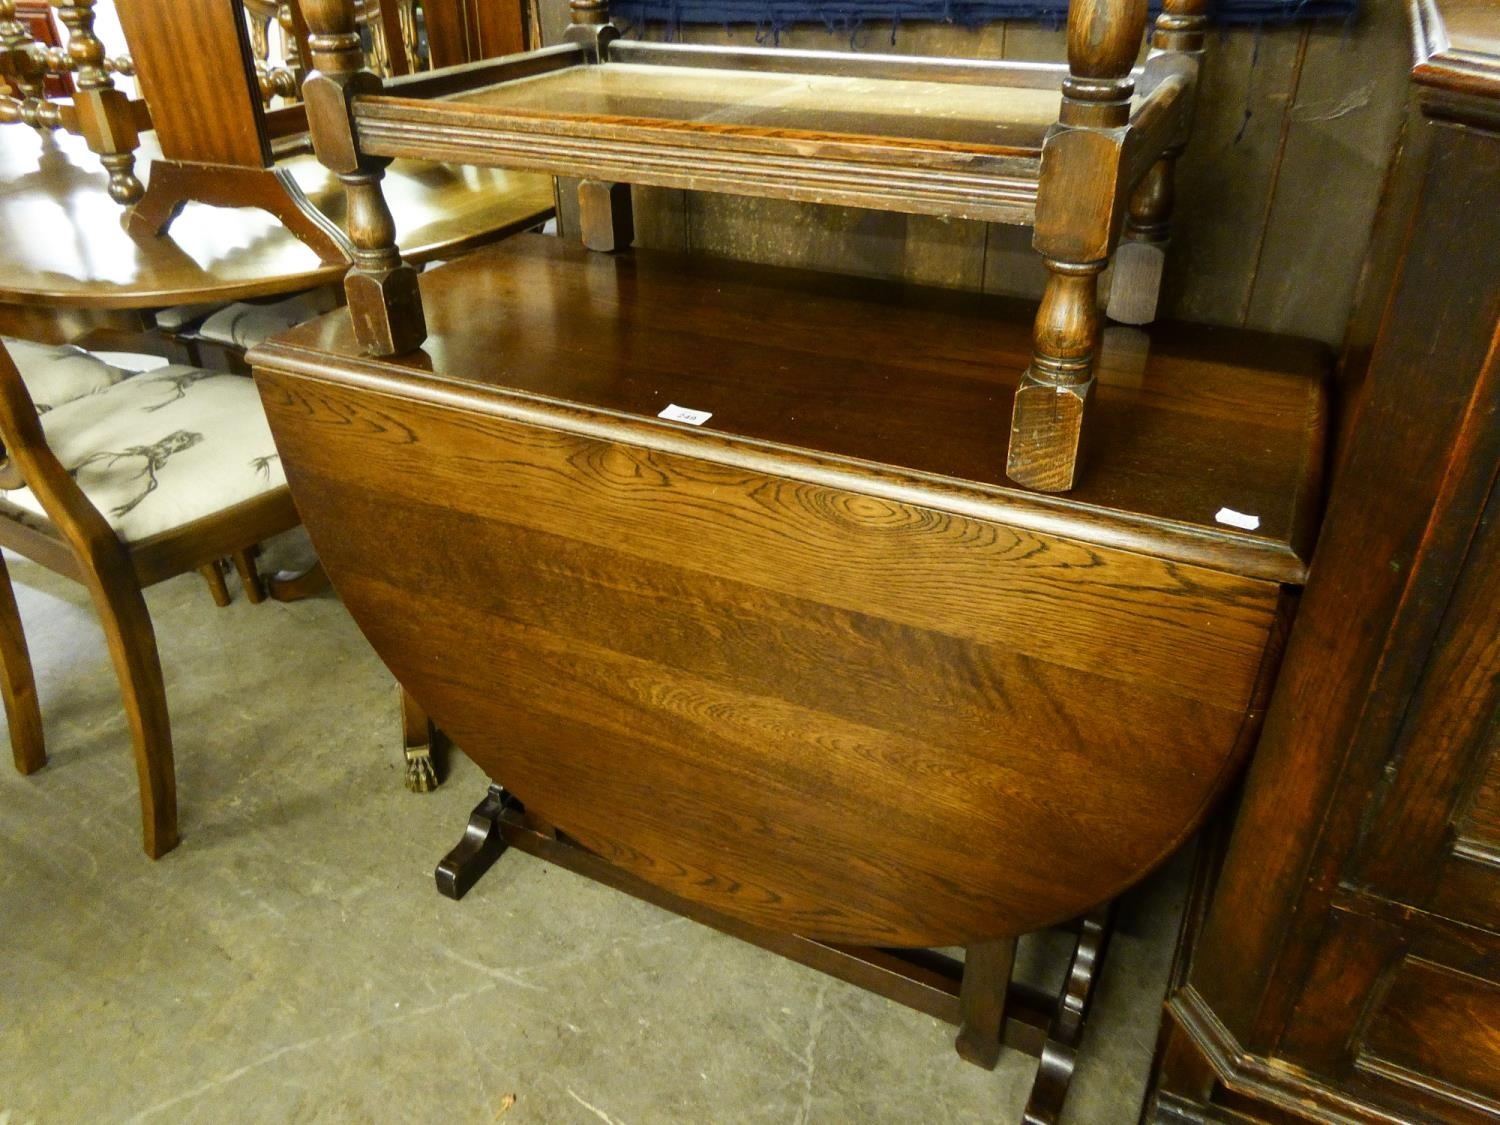 AN OAK OVAL GATE LEG DINING TABLE, ON TWO TRESTLE SUPPORTS WITH SLEDGE FEET, THE PLAIN GATE LEGS